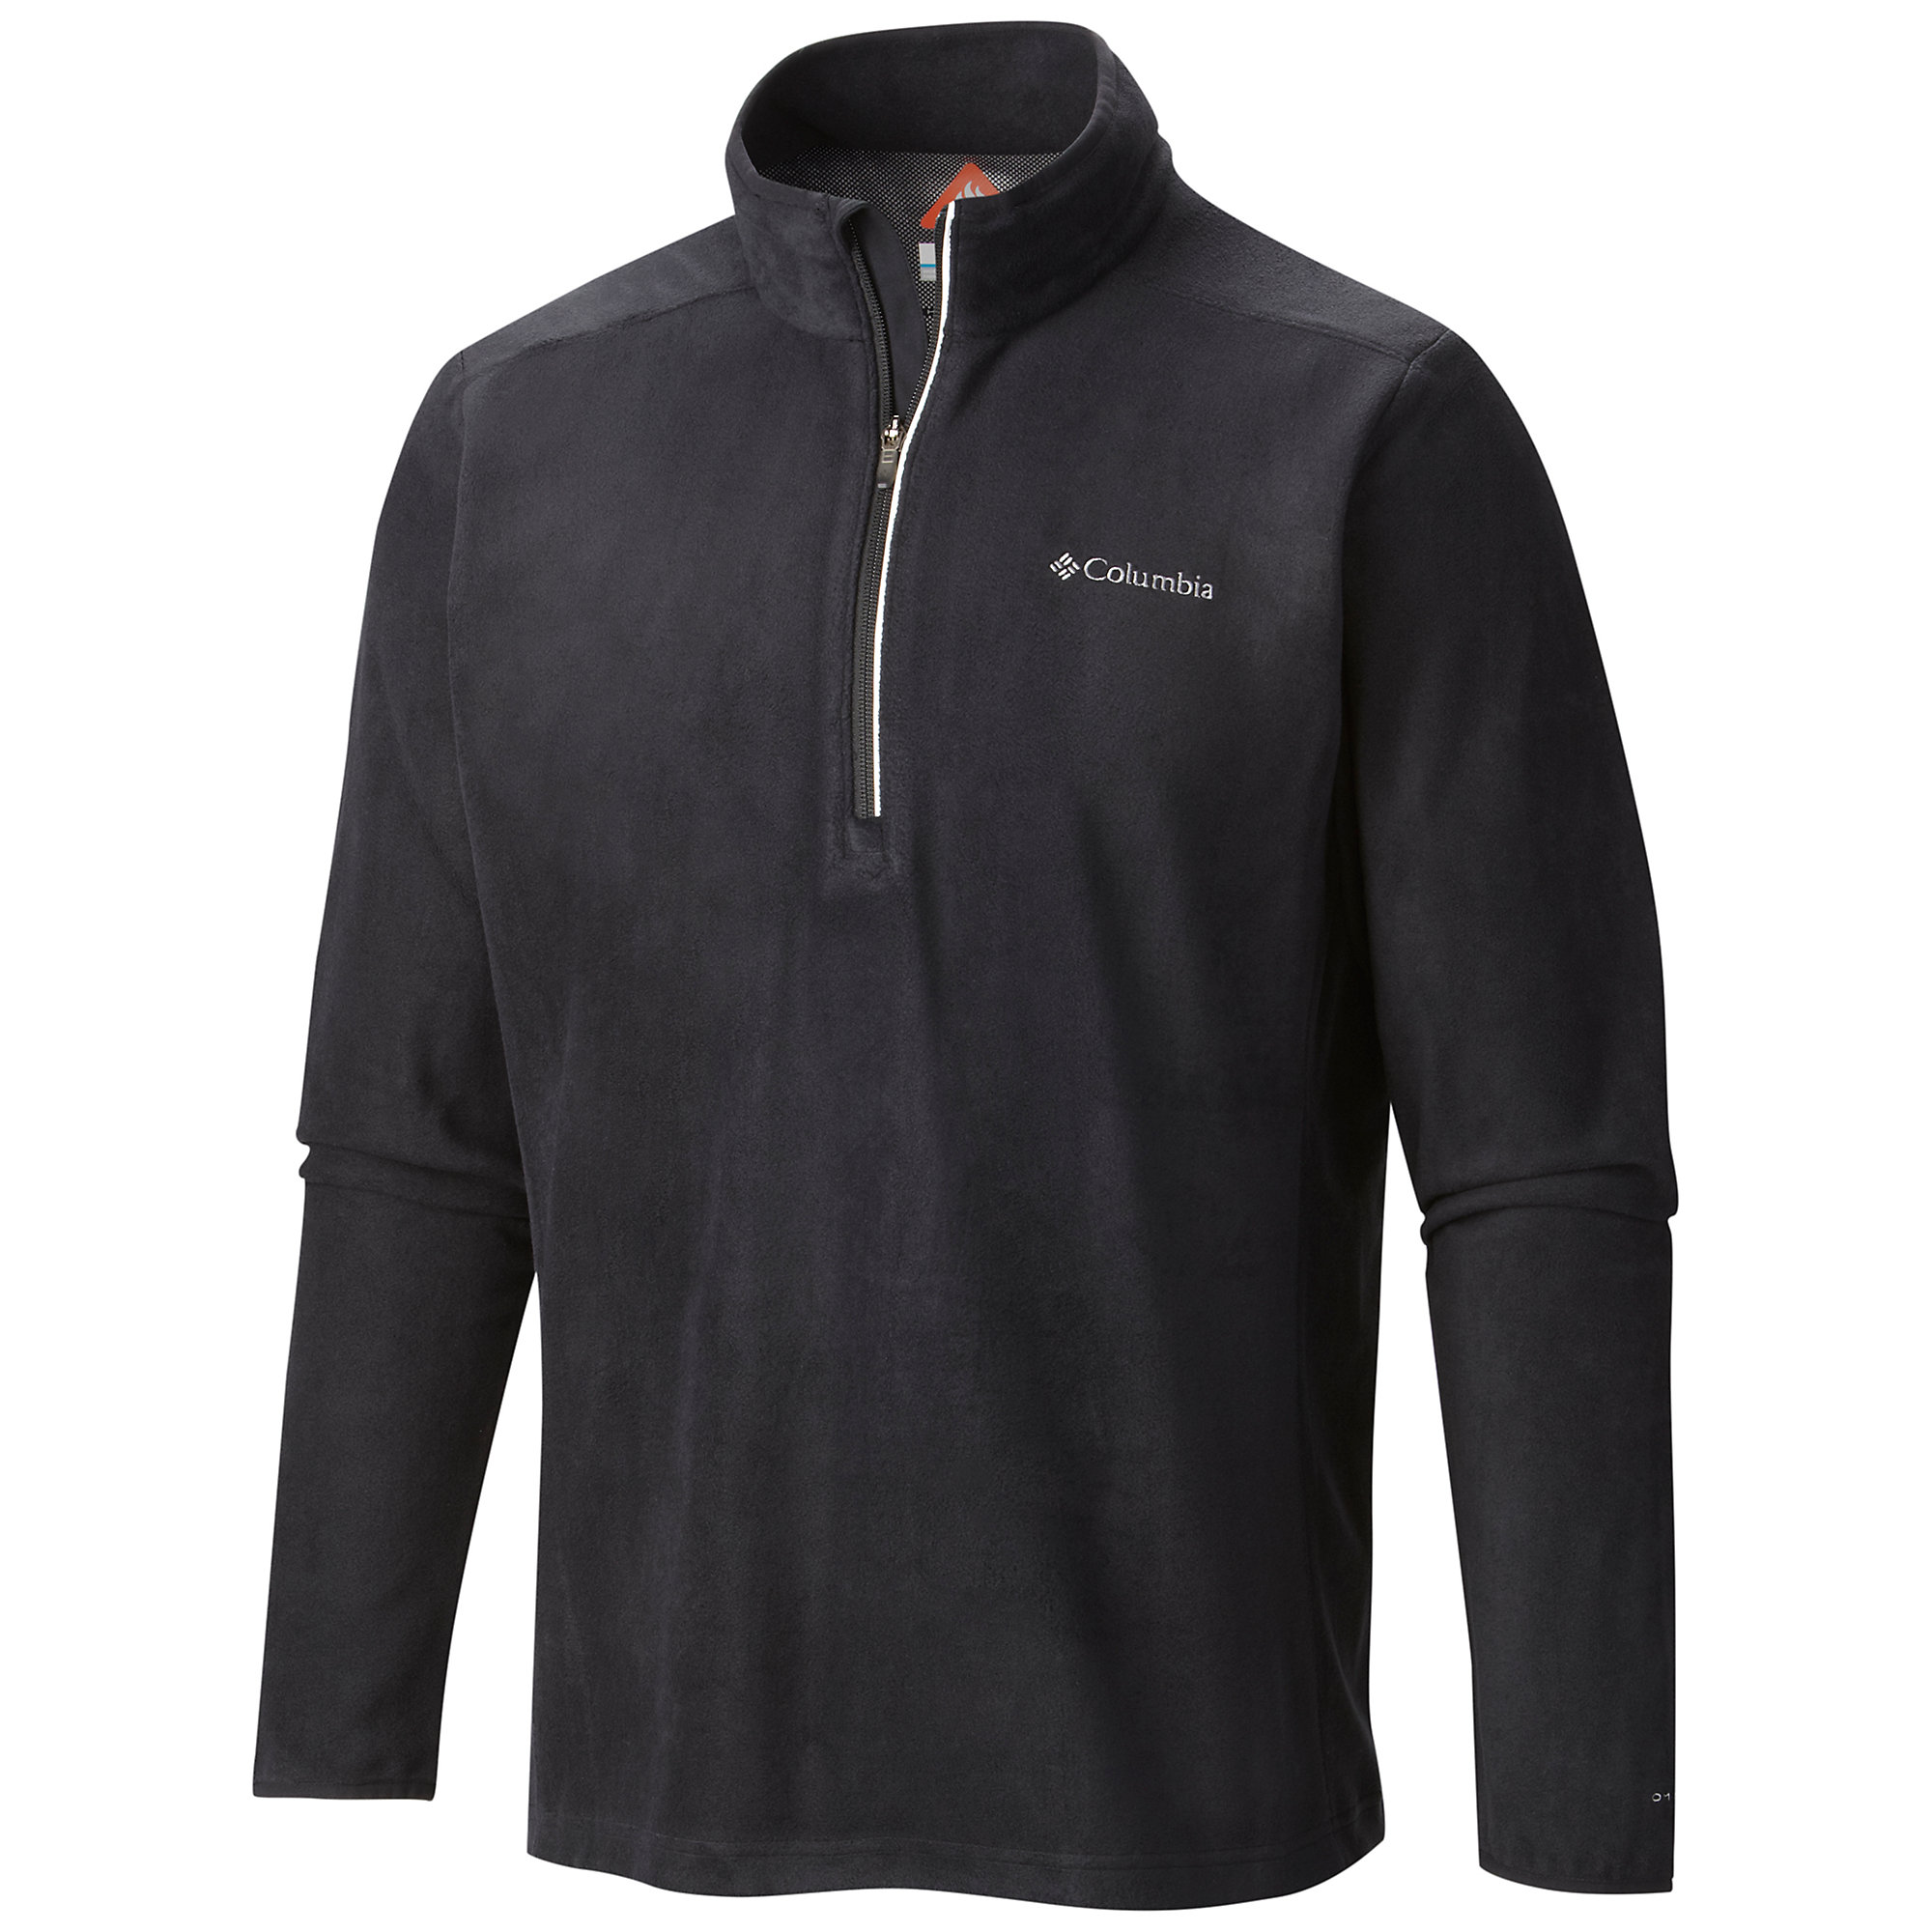 photo: Columbia Men's Blue Basin Half Zip Fleece Pullover